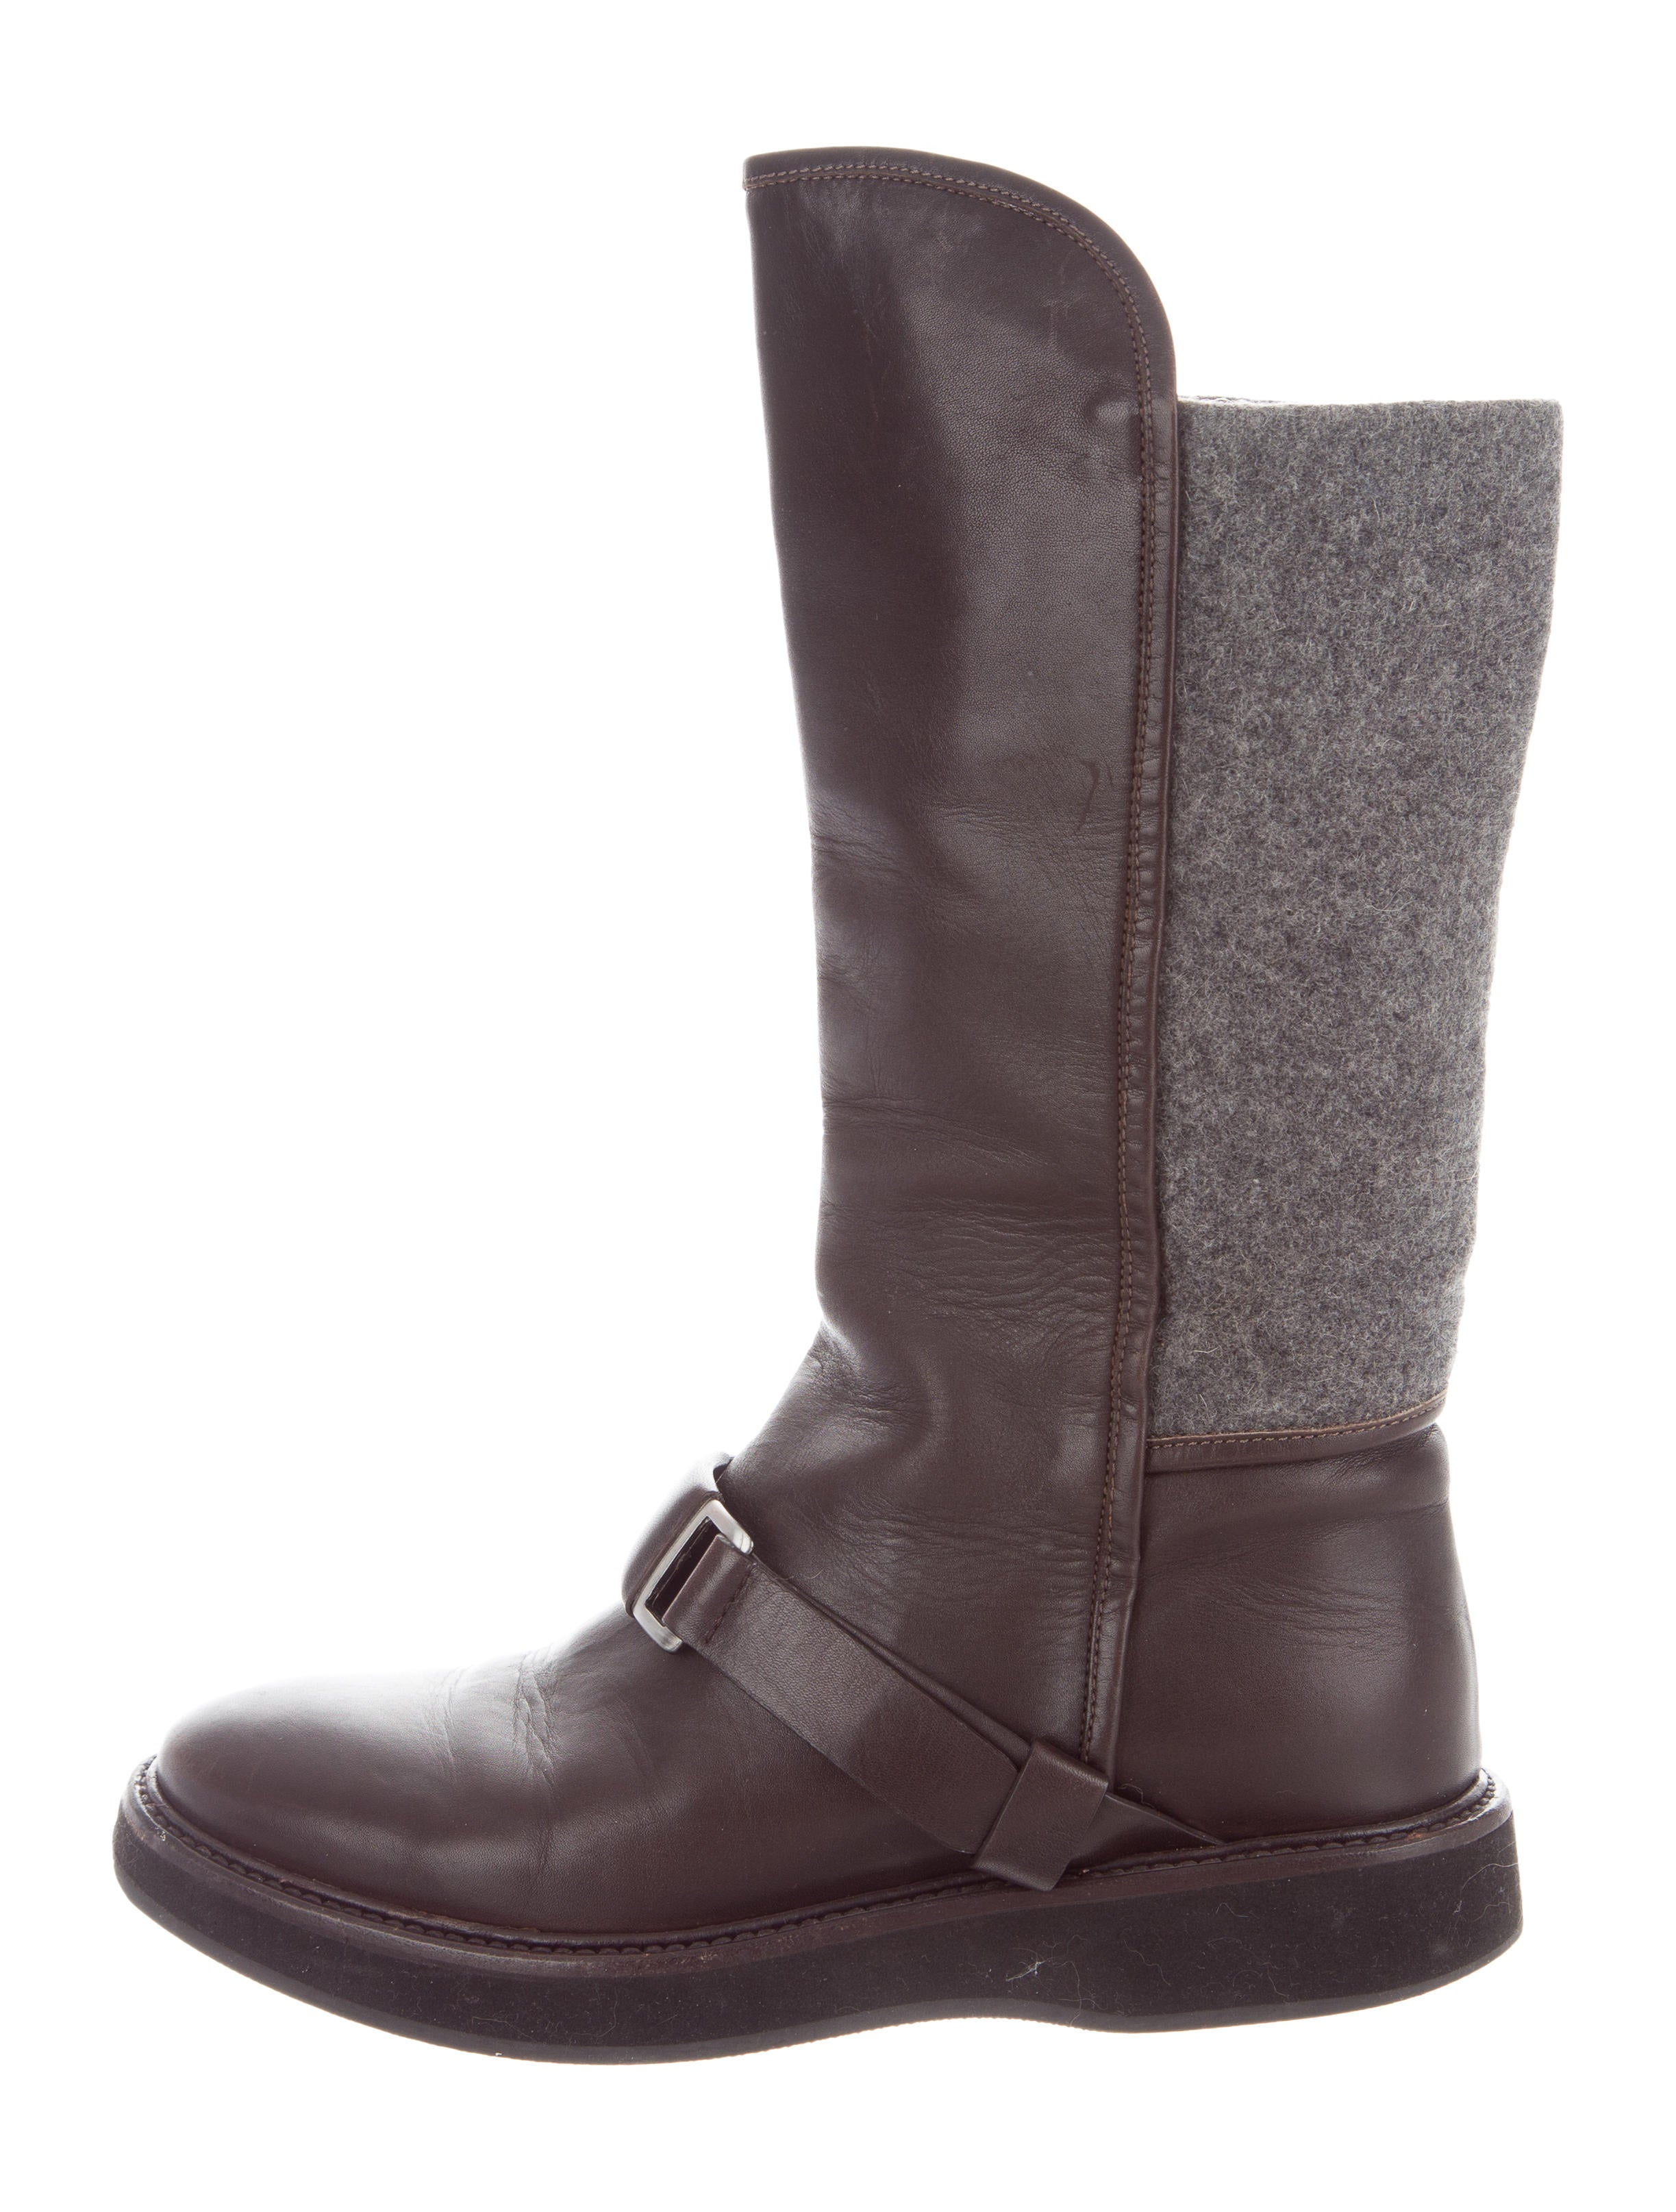 clearance purchase Fabiana Filippi Leather Mid-Calf Boots clearance largest supplier visa payment for sale buy cheap eastbay cheap sale many kinds of w1D5LBBzxZ